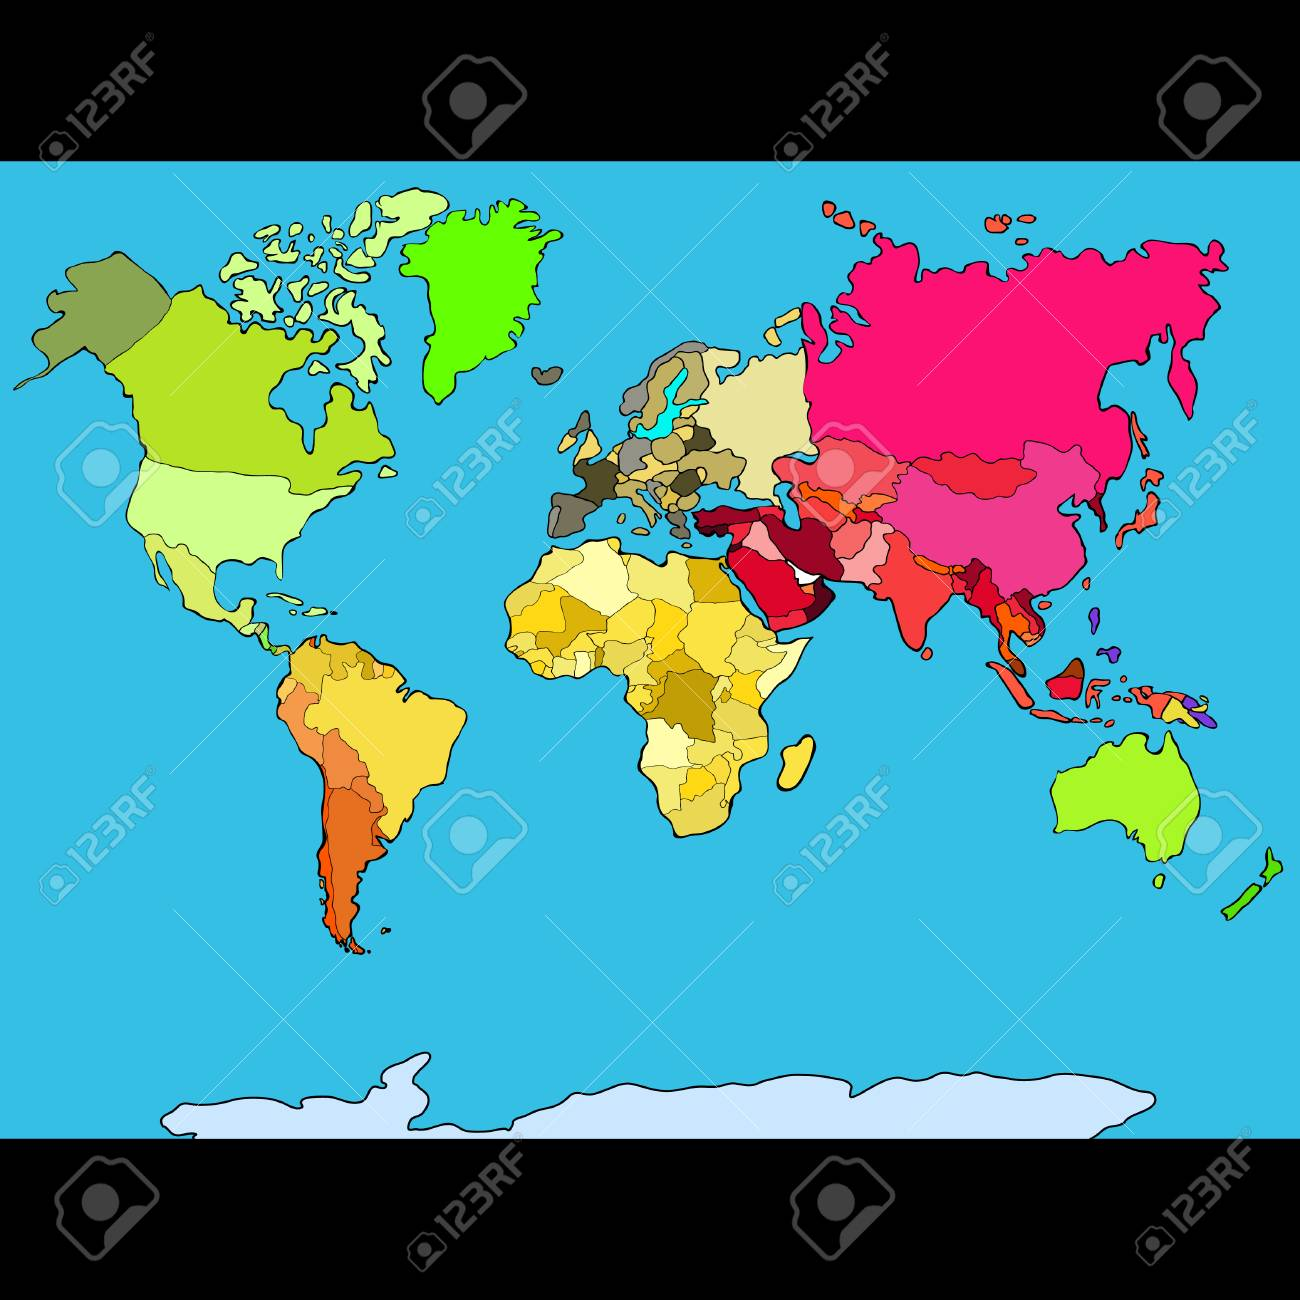 World map continents and countries vector illustration.